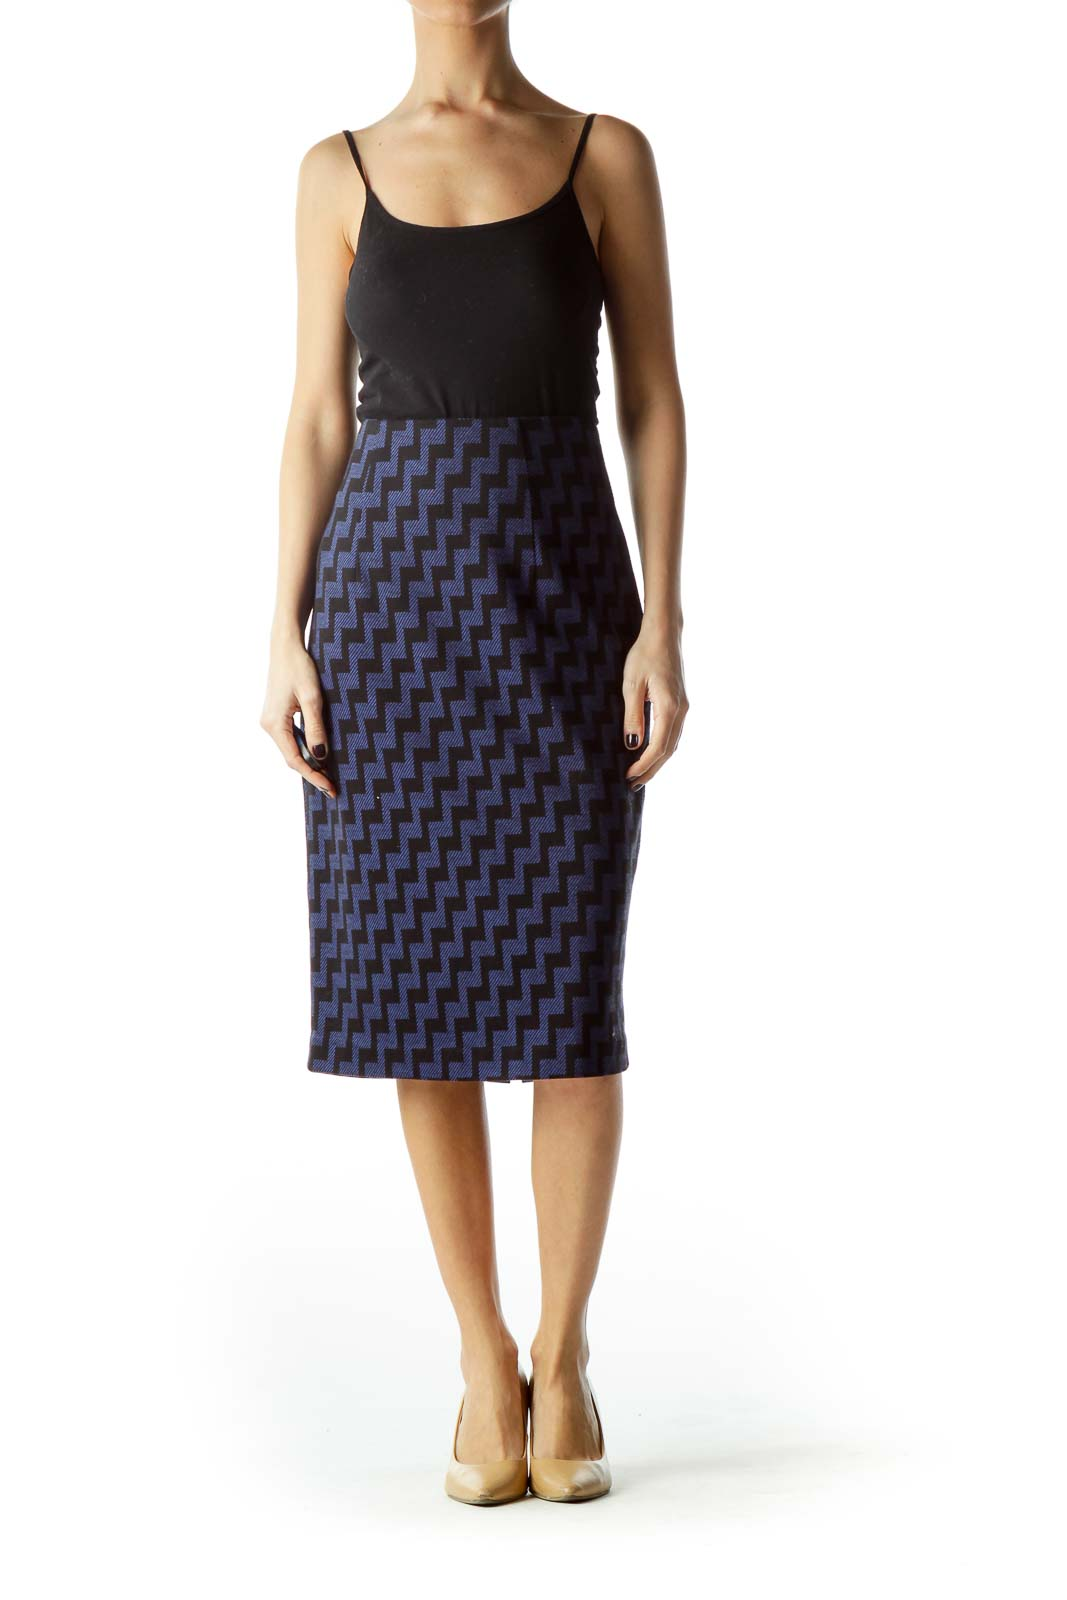 Black Blue Geometric Print Midi Pencil Knit Skirt